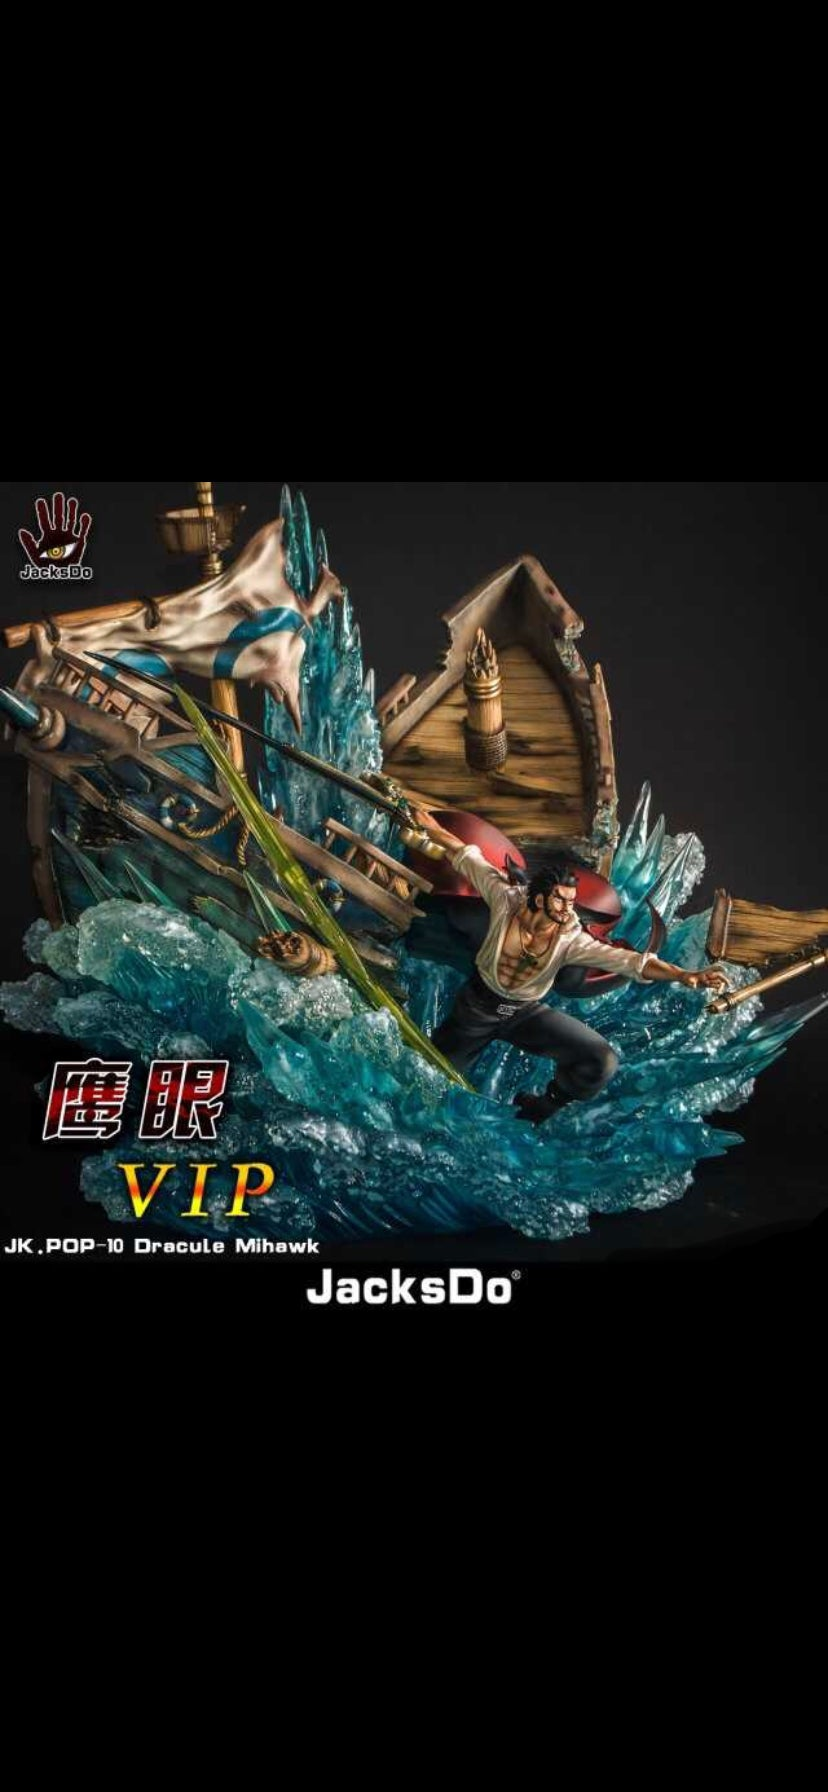 Image of [IN-STOCK]One Piece Jacksdo Mihawk Resin Statue(VIP Version)